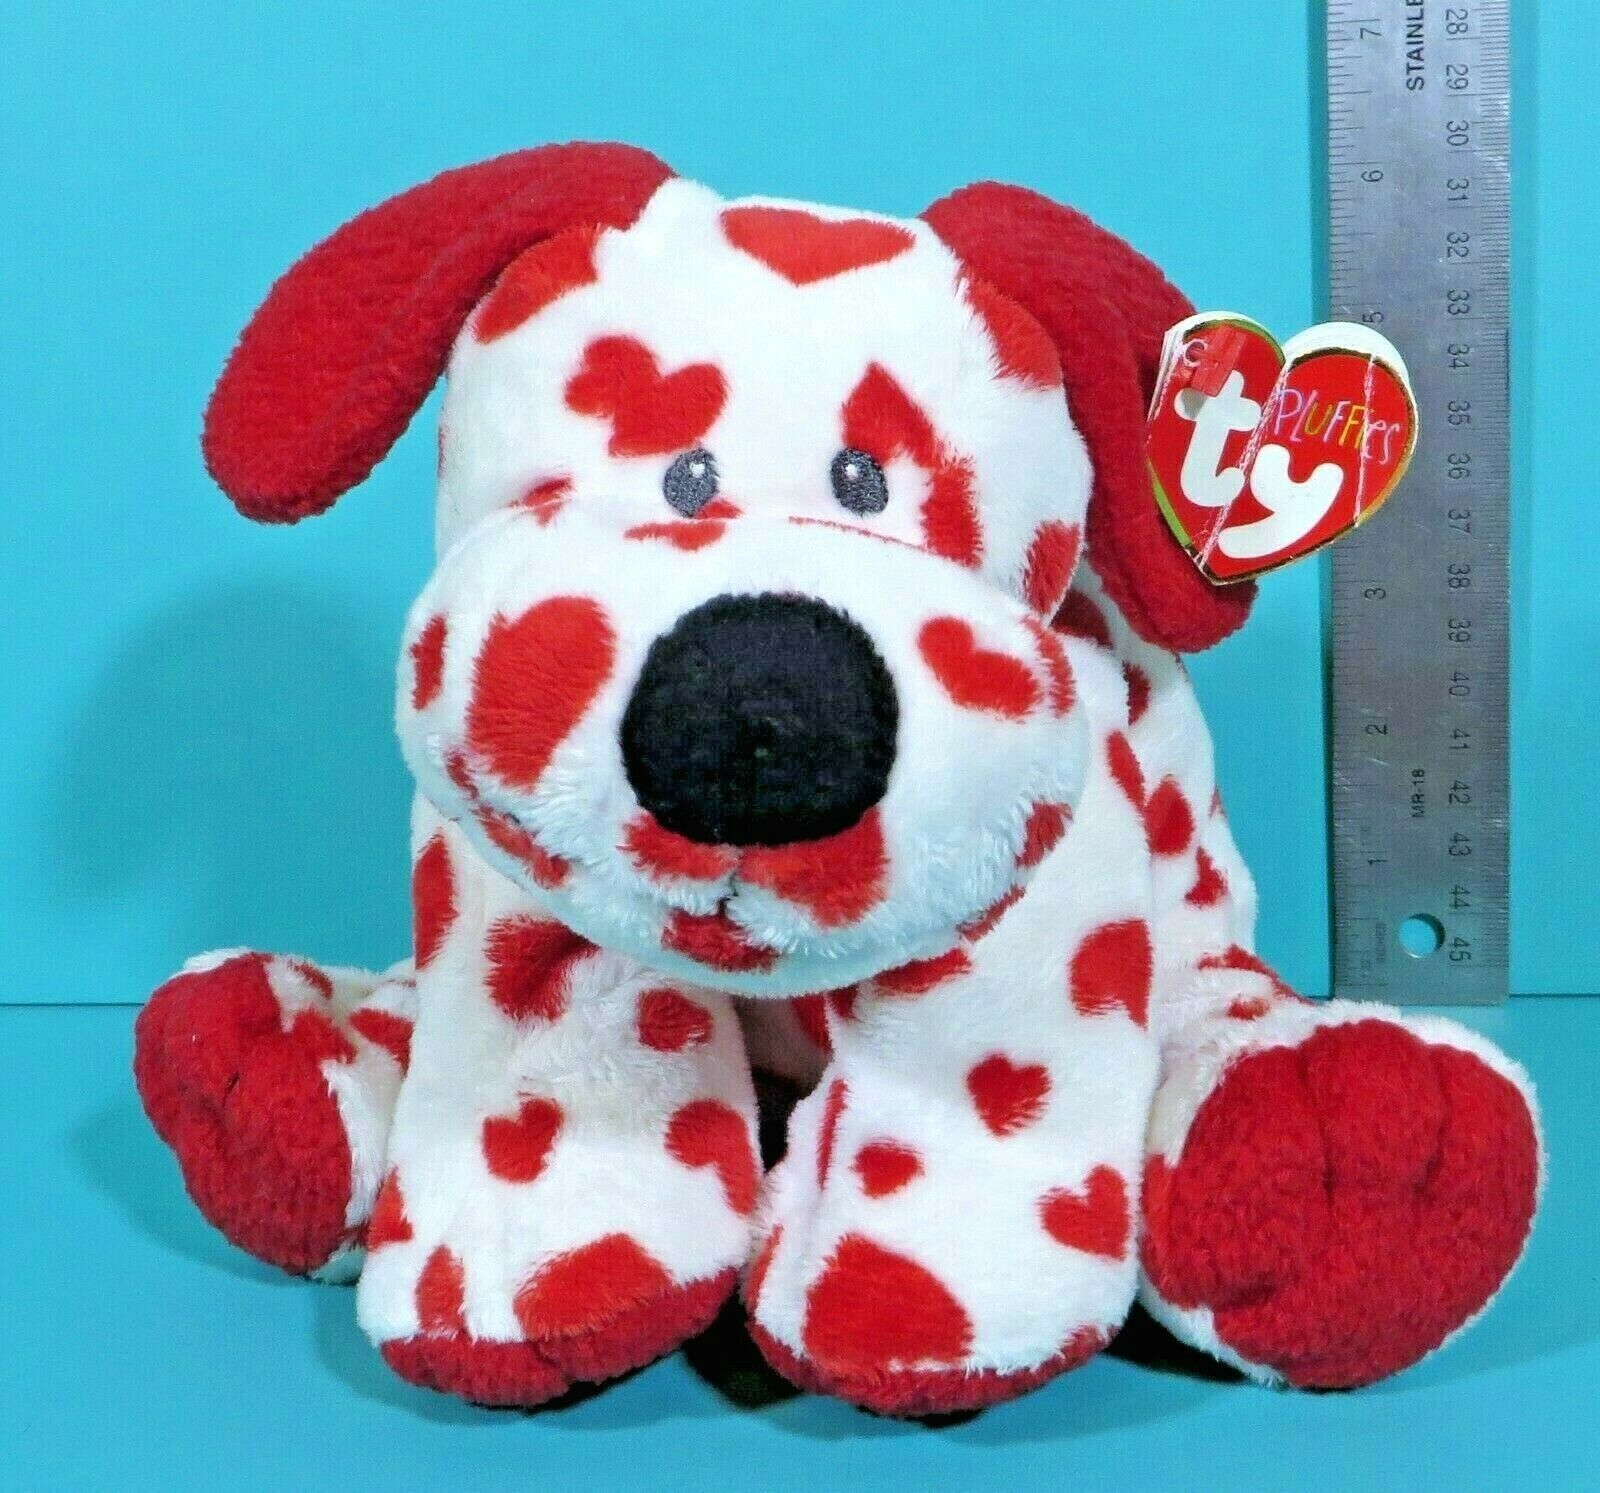 "Primary image for Ty Pluffies Sweetly Puppy Dog White Red Hearts 8"" Plush Sewn Eyes Lovey 2006 Tag"